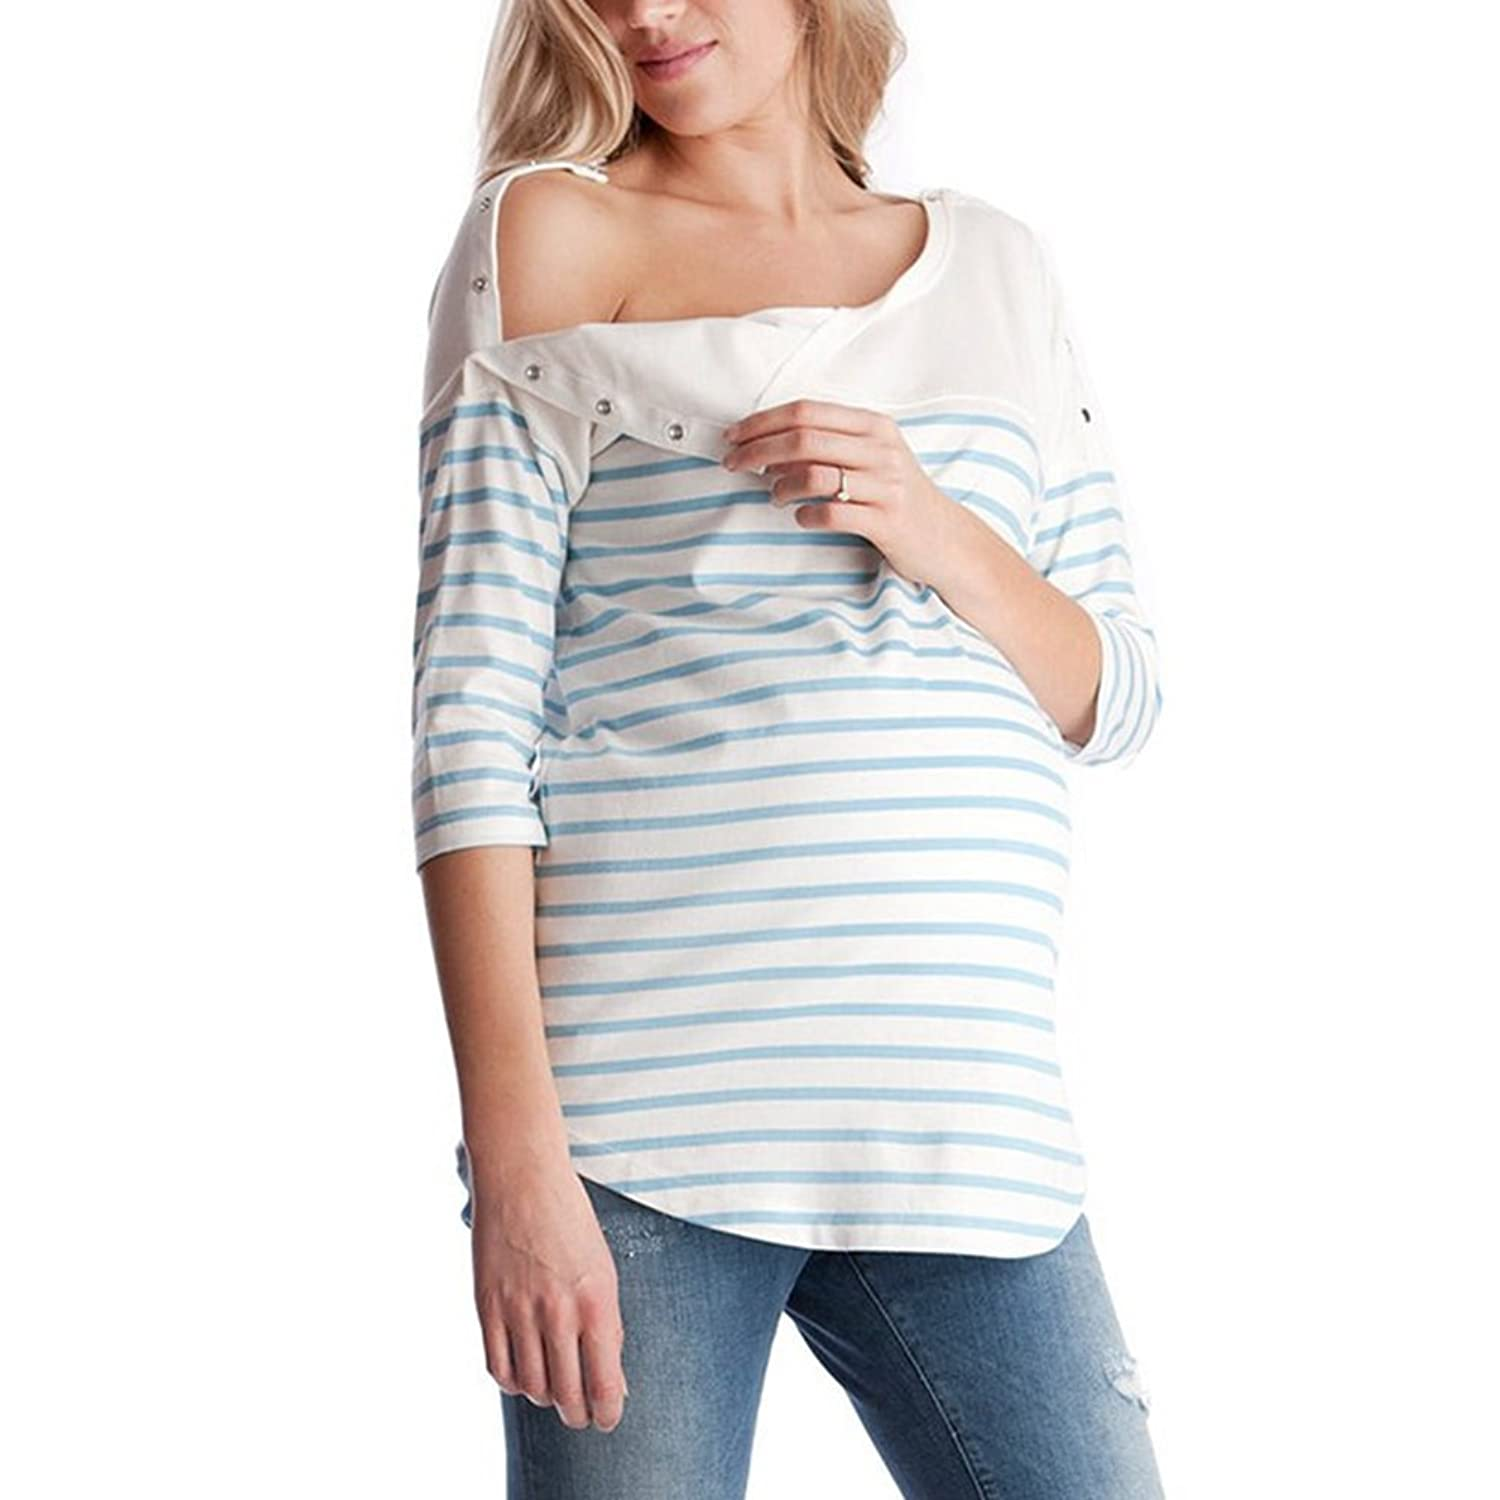 fe5c3d6d775 MEIHAOWEI Maternity Clothes Nursing Top Nursing Breastfeeding Tops  Pregnancy Clothes for Pregnant Women Maternity Tops: Amazon.co.uk: Clothing